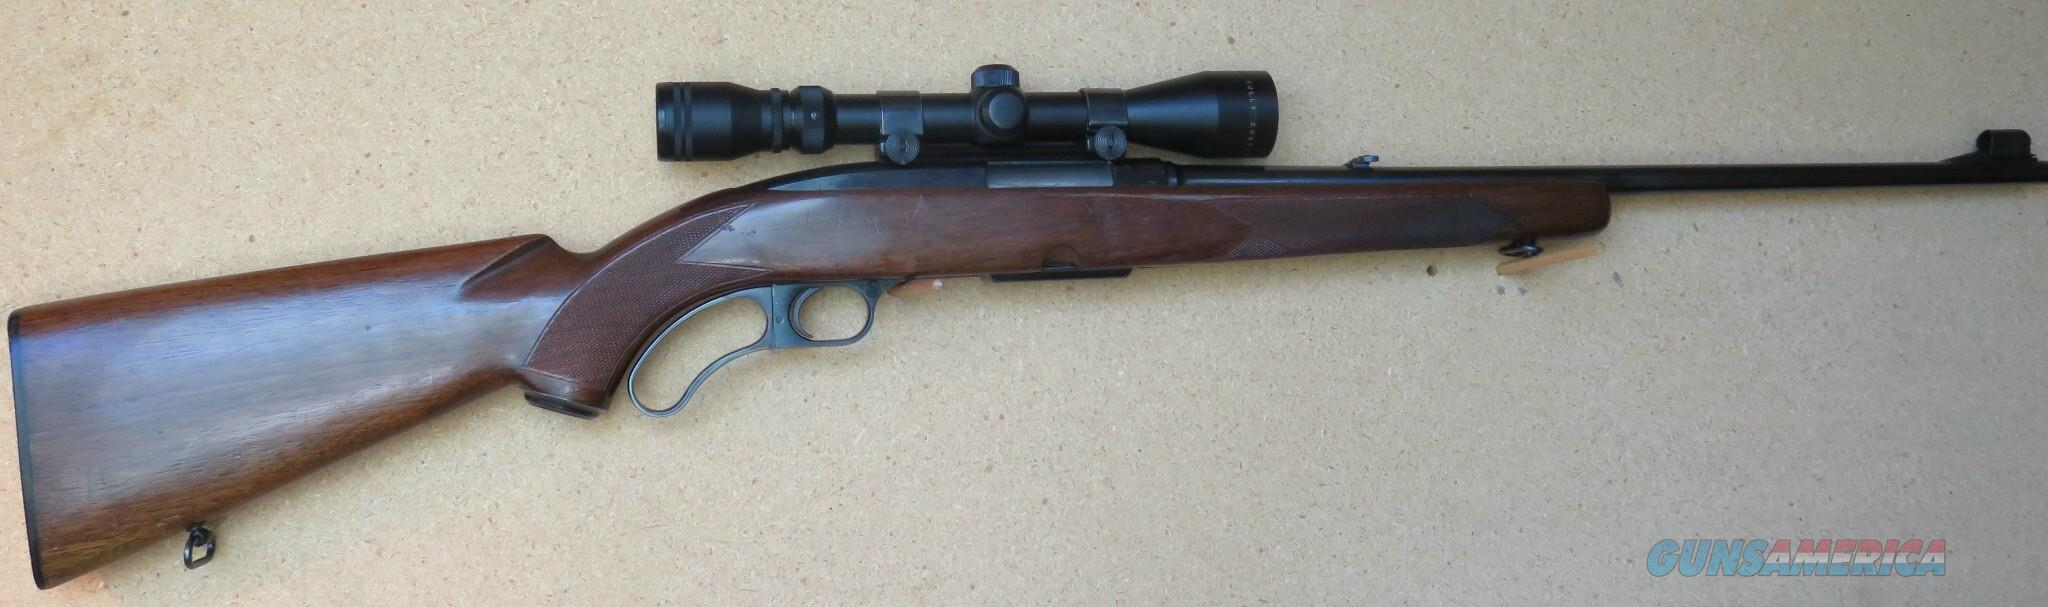 Model 88 Winchester Rifle  Cal .308 Win. Lever Action, Scoped    Guns > Rifles > Winchester Rifles - Modern Lever > Other Lever > Pre-64